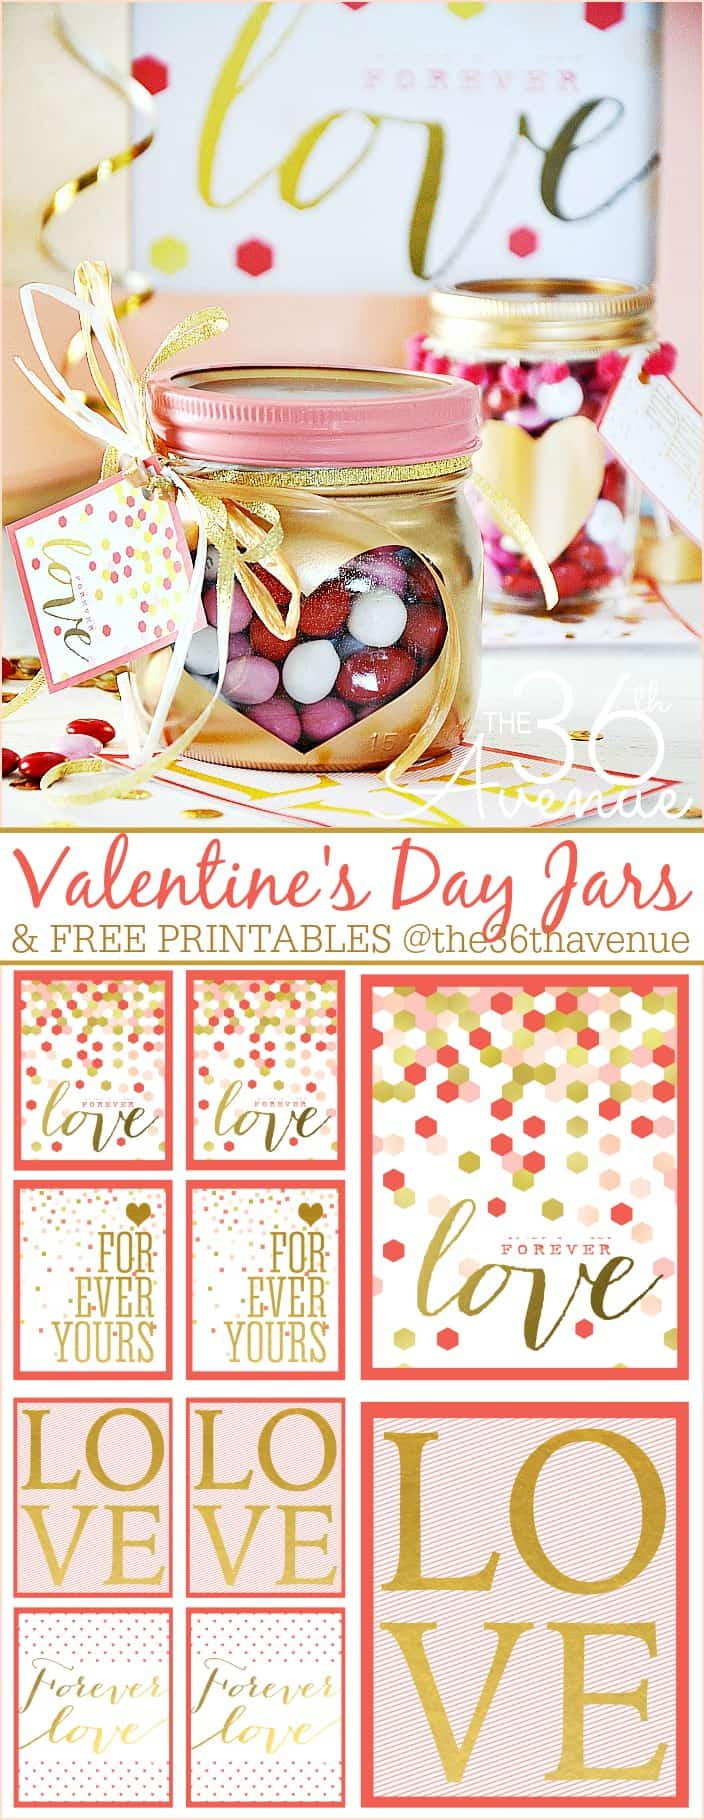 Valentines-Day-Gifts-and-Free-Printable-at-the36thavenue.com-